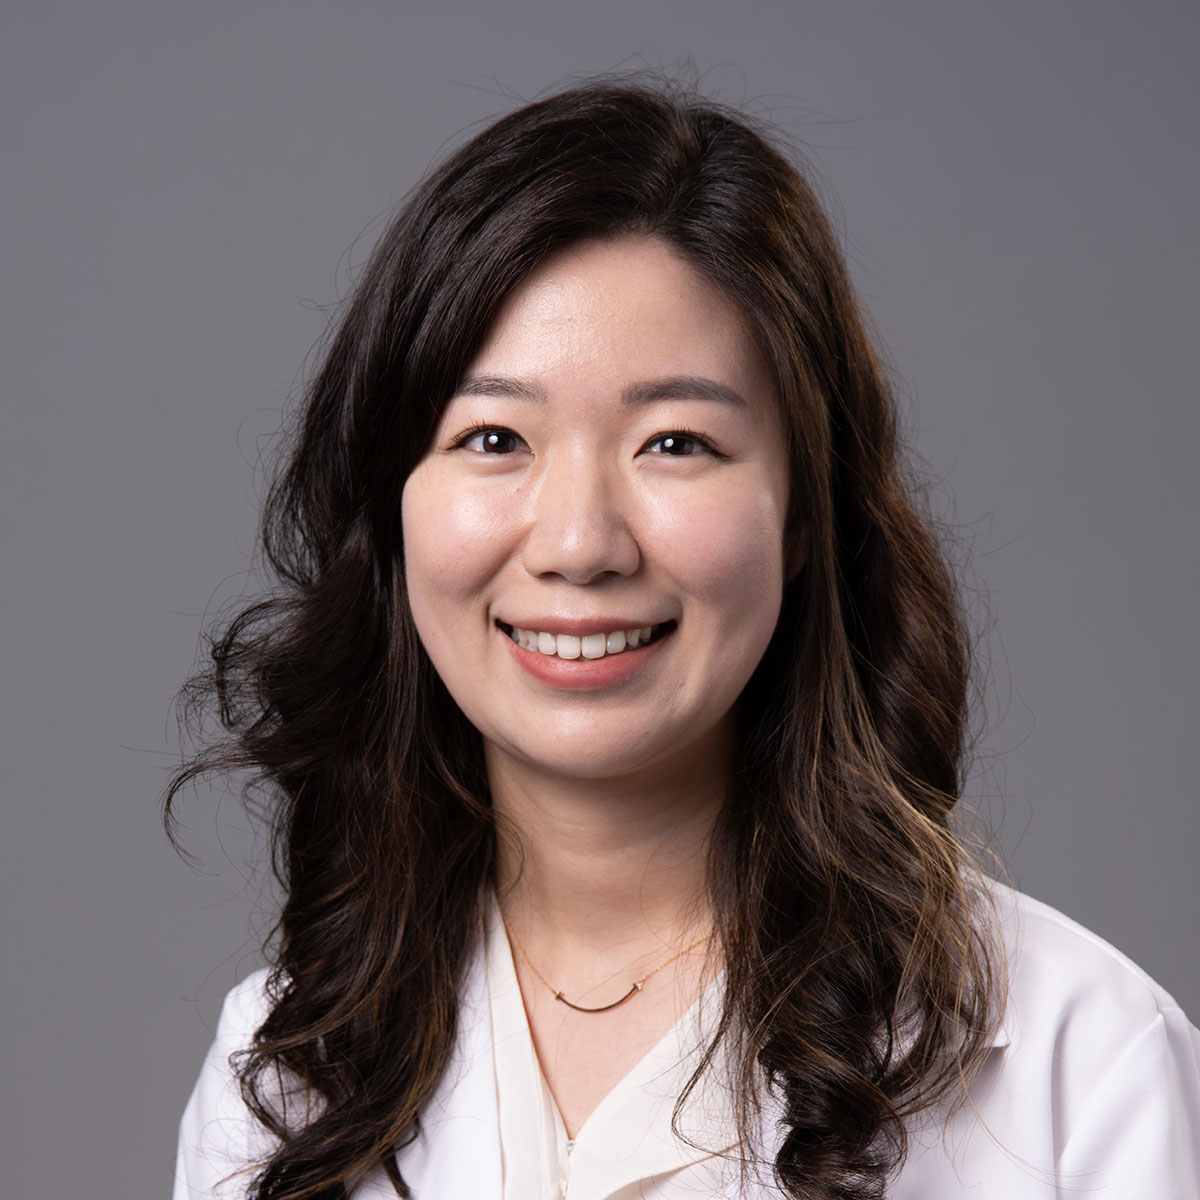 A friendly headshot of Dr. Janice Lee